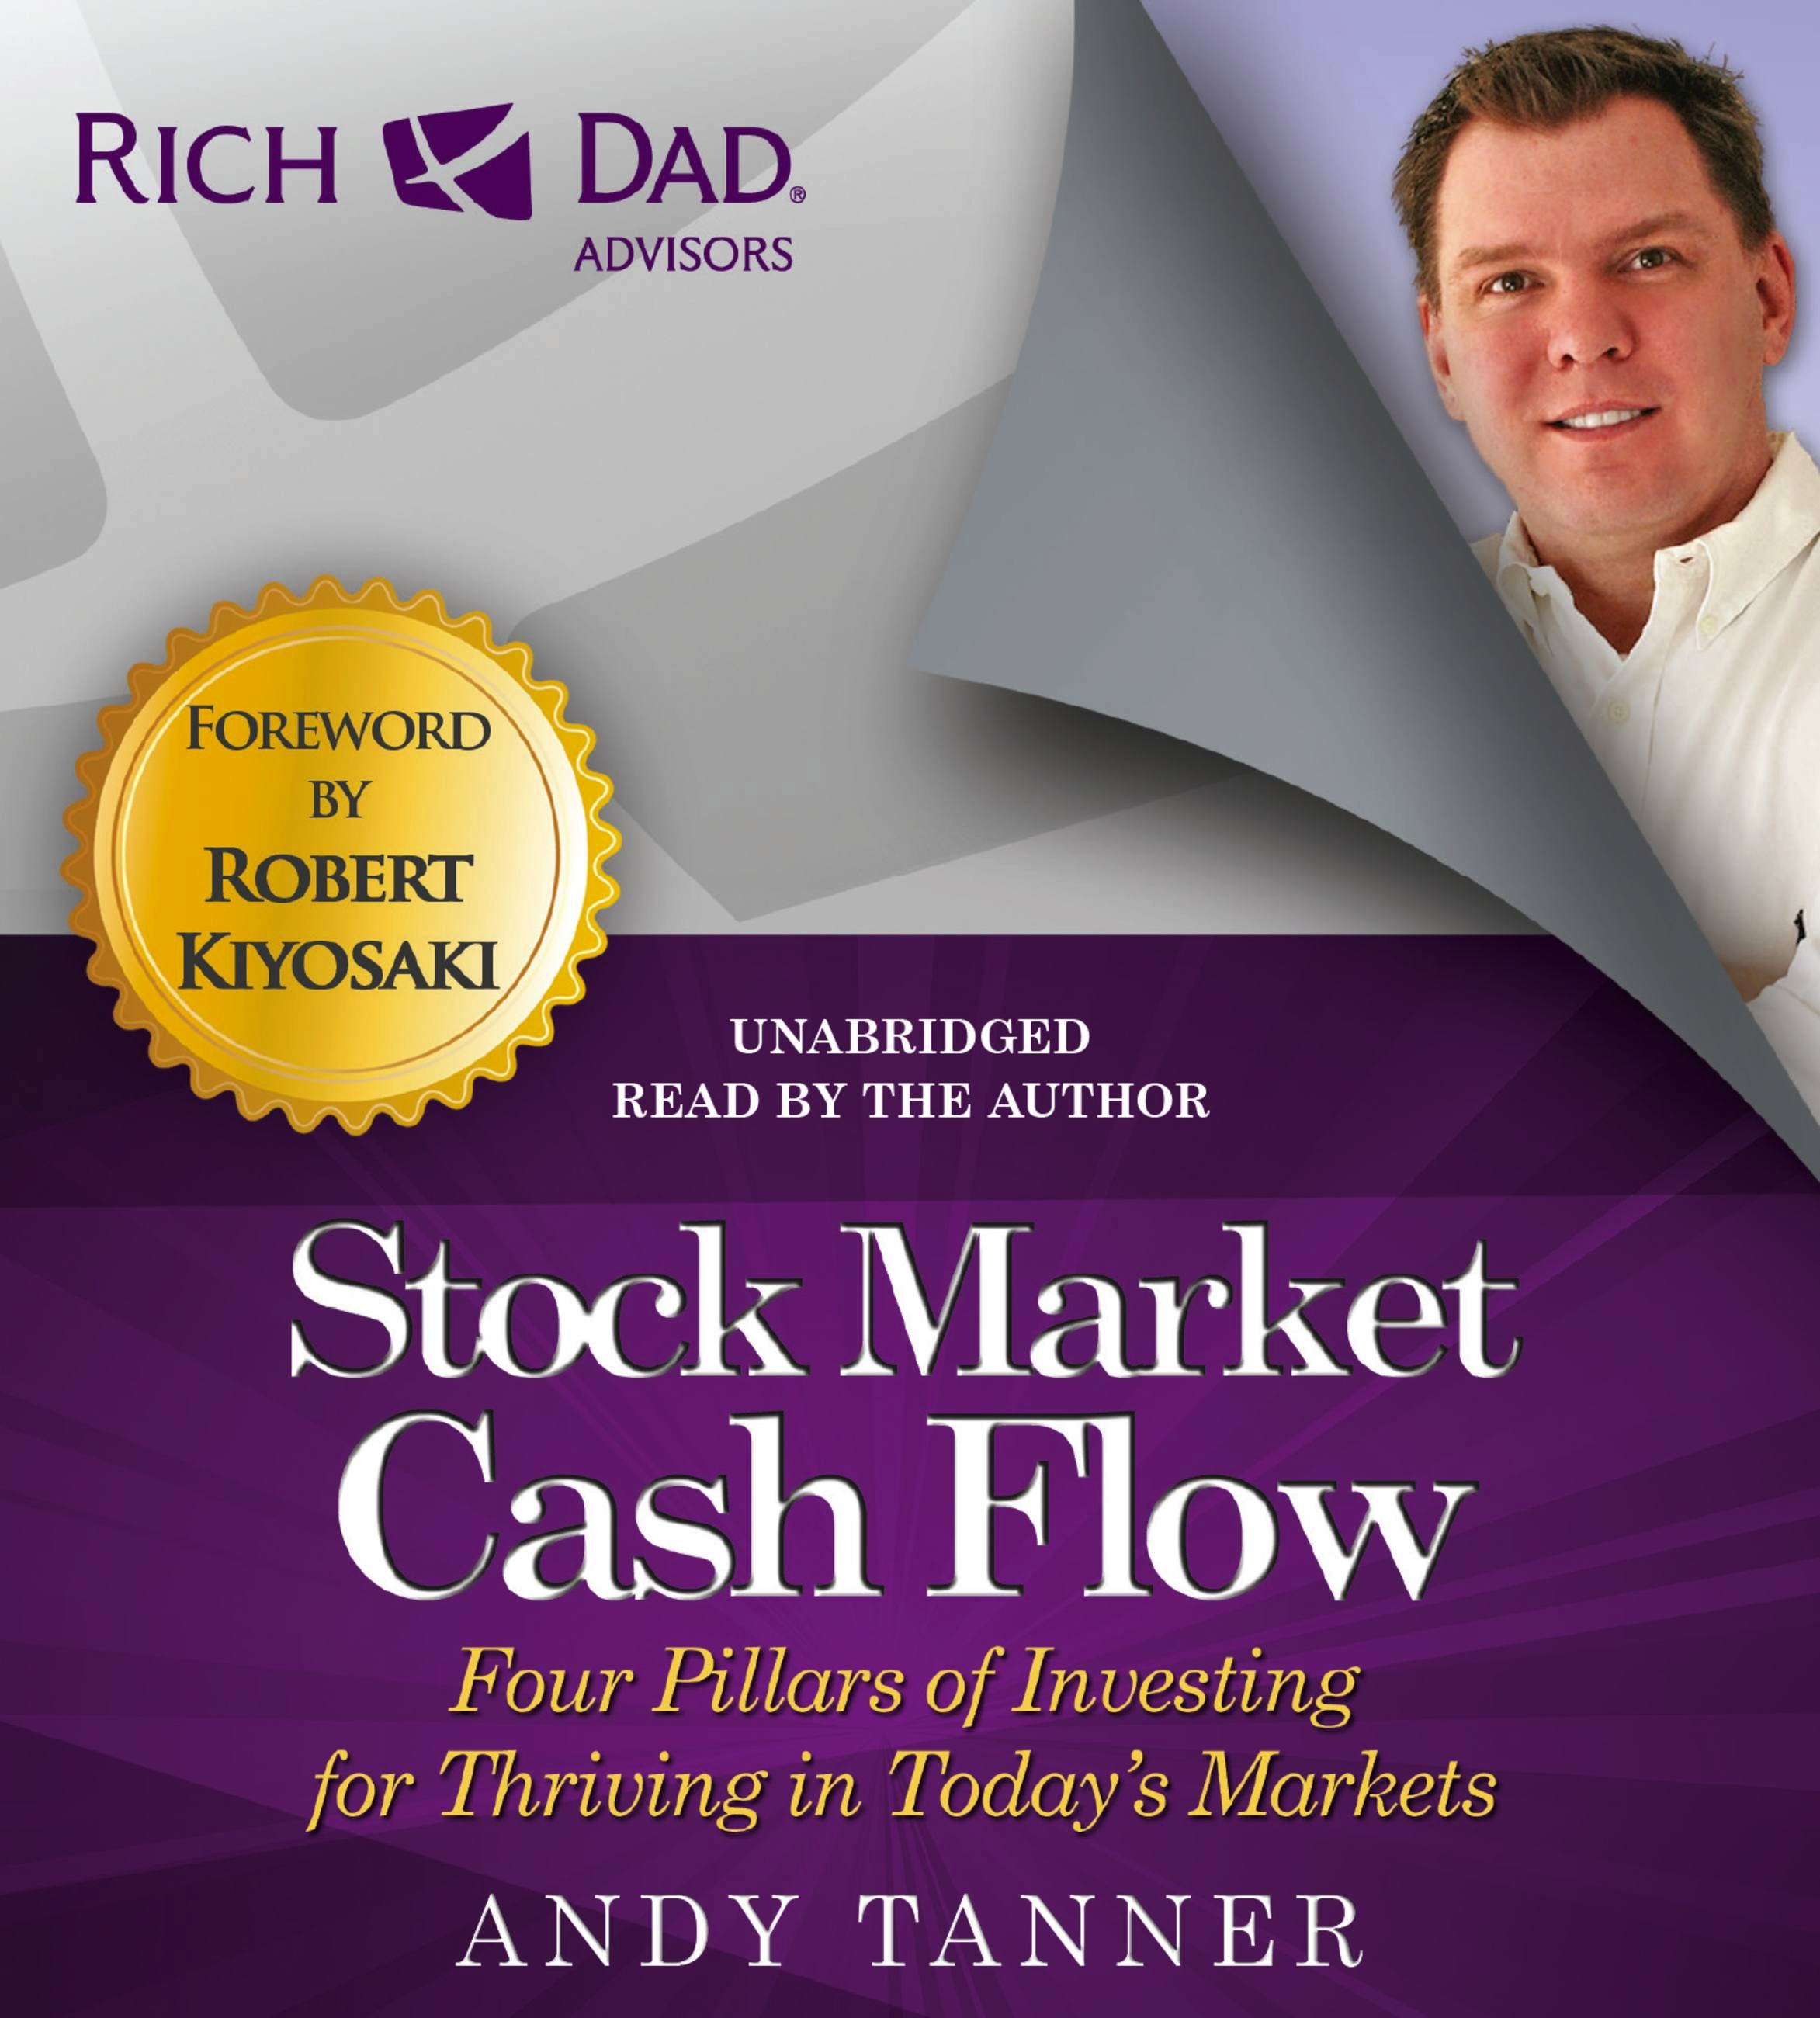 Rich Dad Advisors: Stock Market Cash Flow